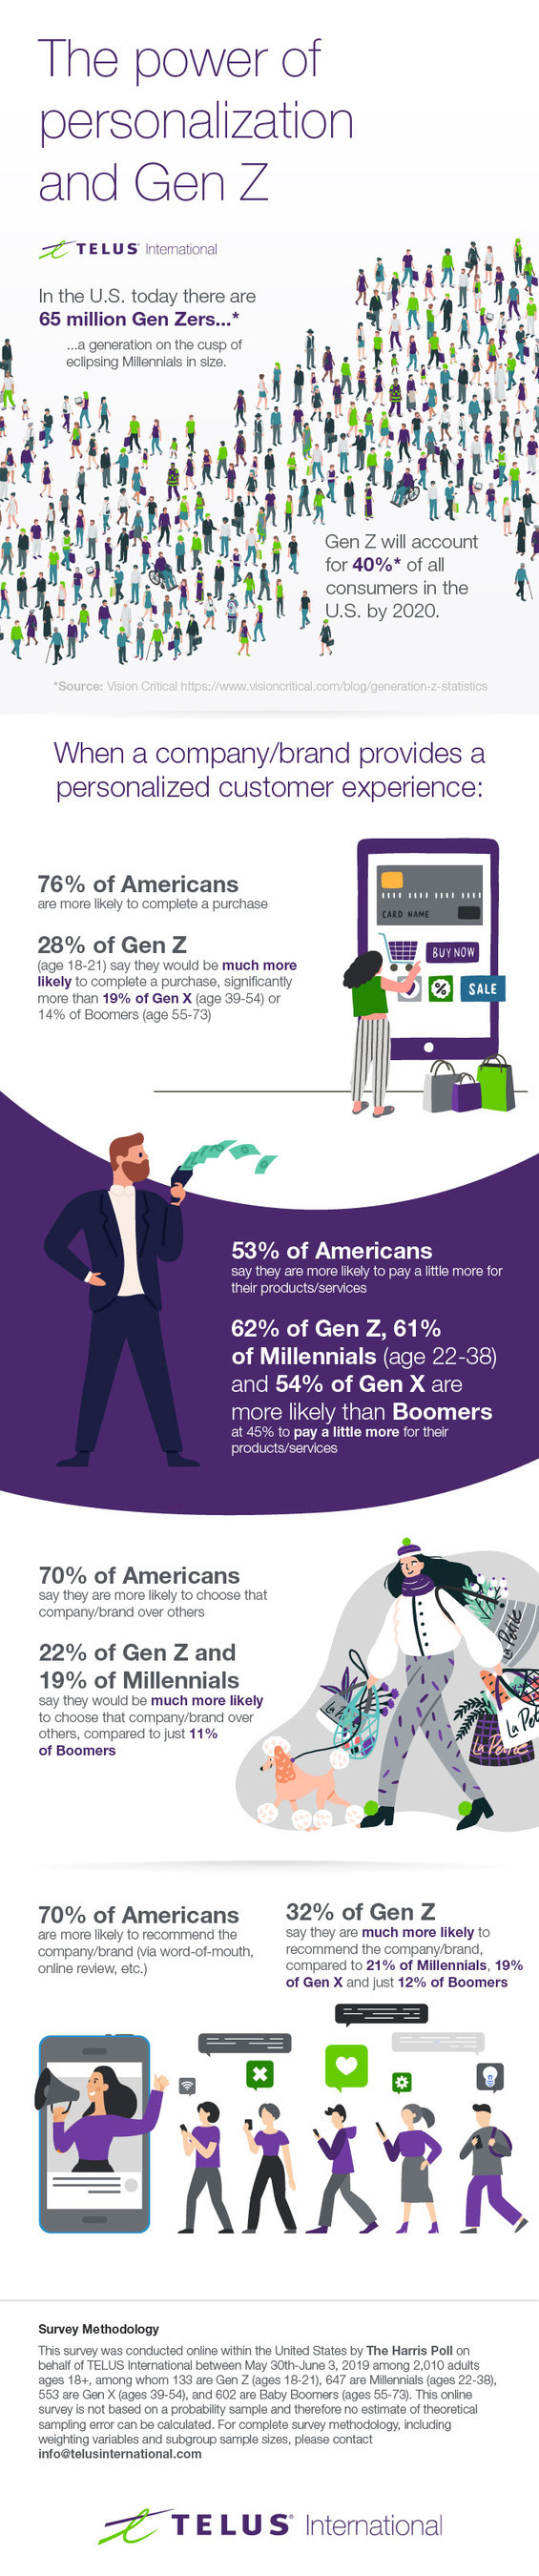 The power of personalization: TELUS International survey finds digital native Gen Zers lead demand for personalized customer experience (CNW Group/TELUS International)